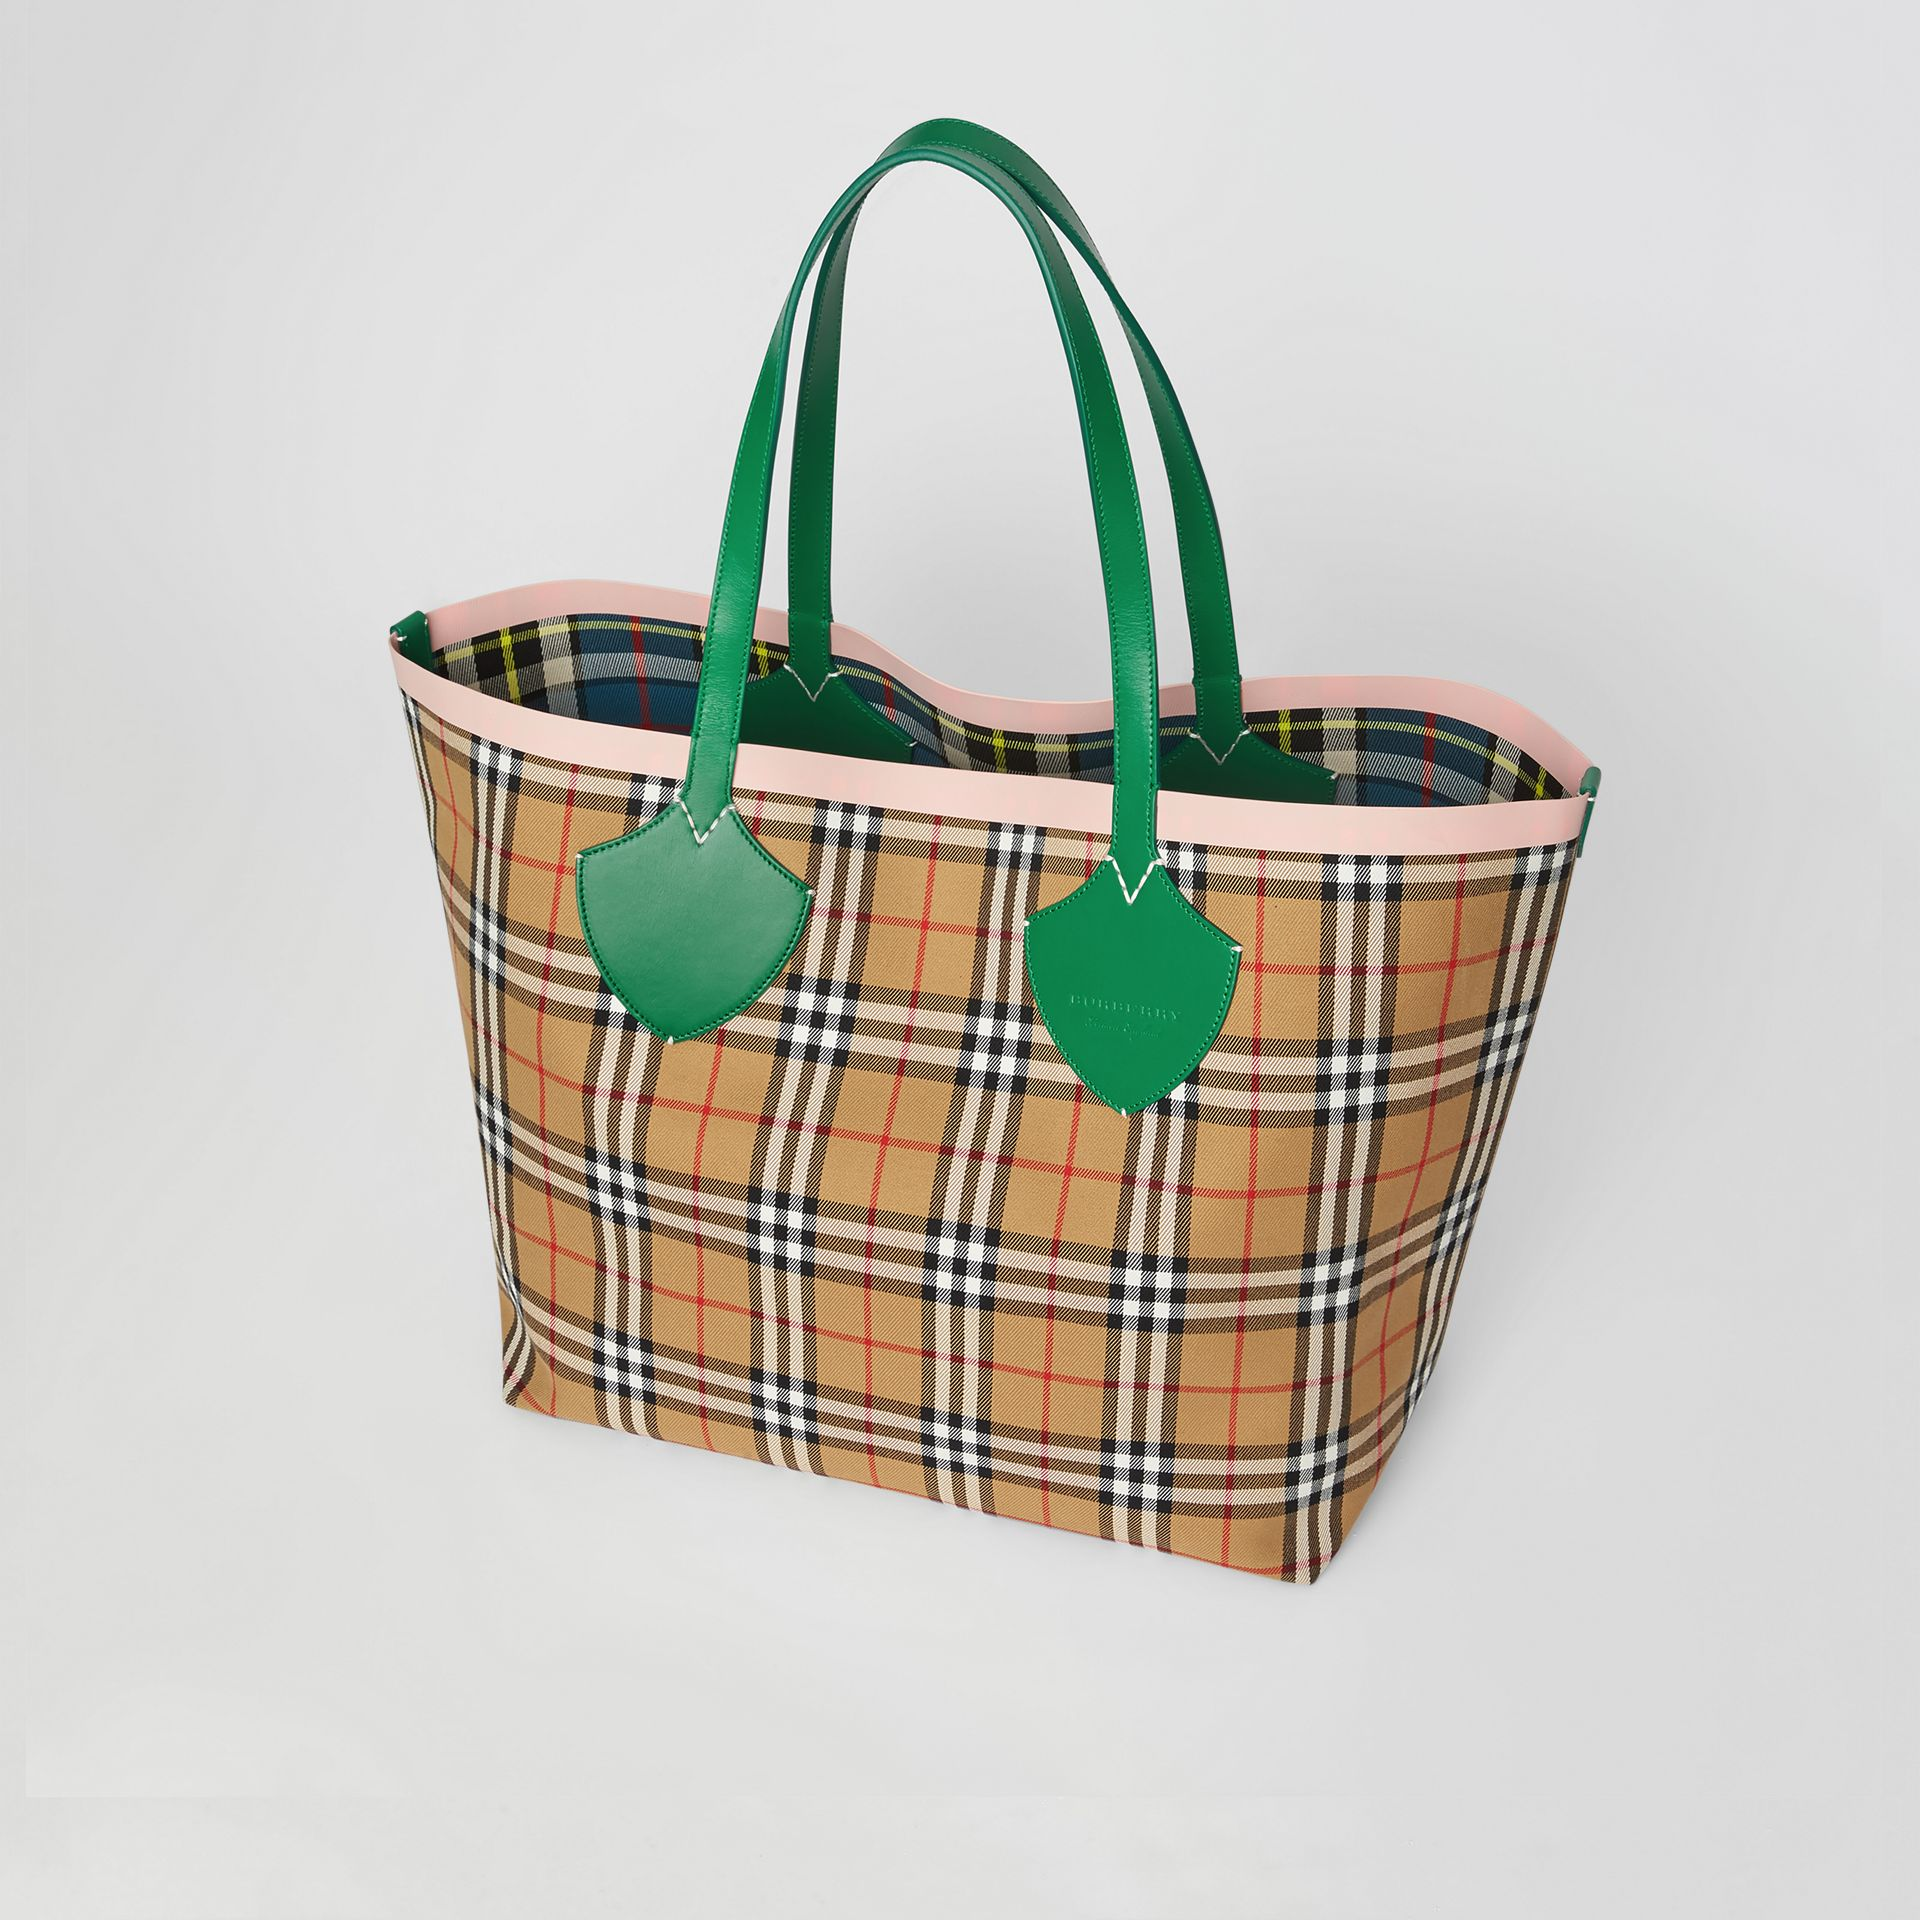 Sac tote The Giant réversible à motif Vintage check (Vert Sombre/abricot Rose) - Femme | Burberry Canada - photo de la galerie 4